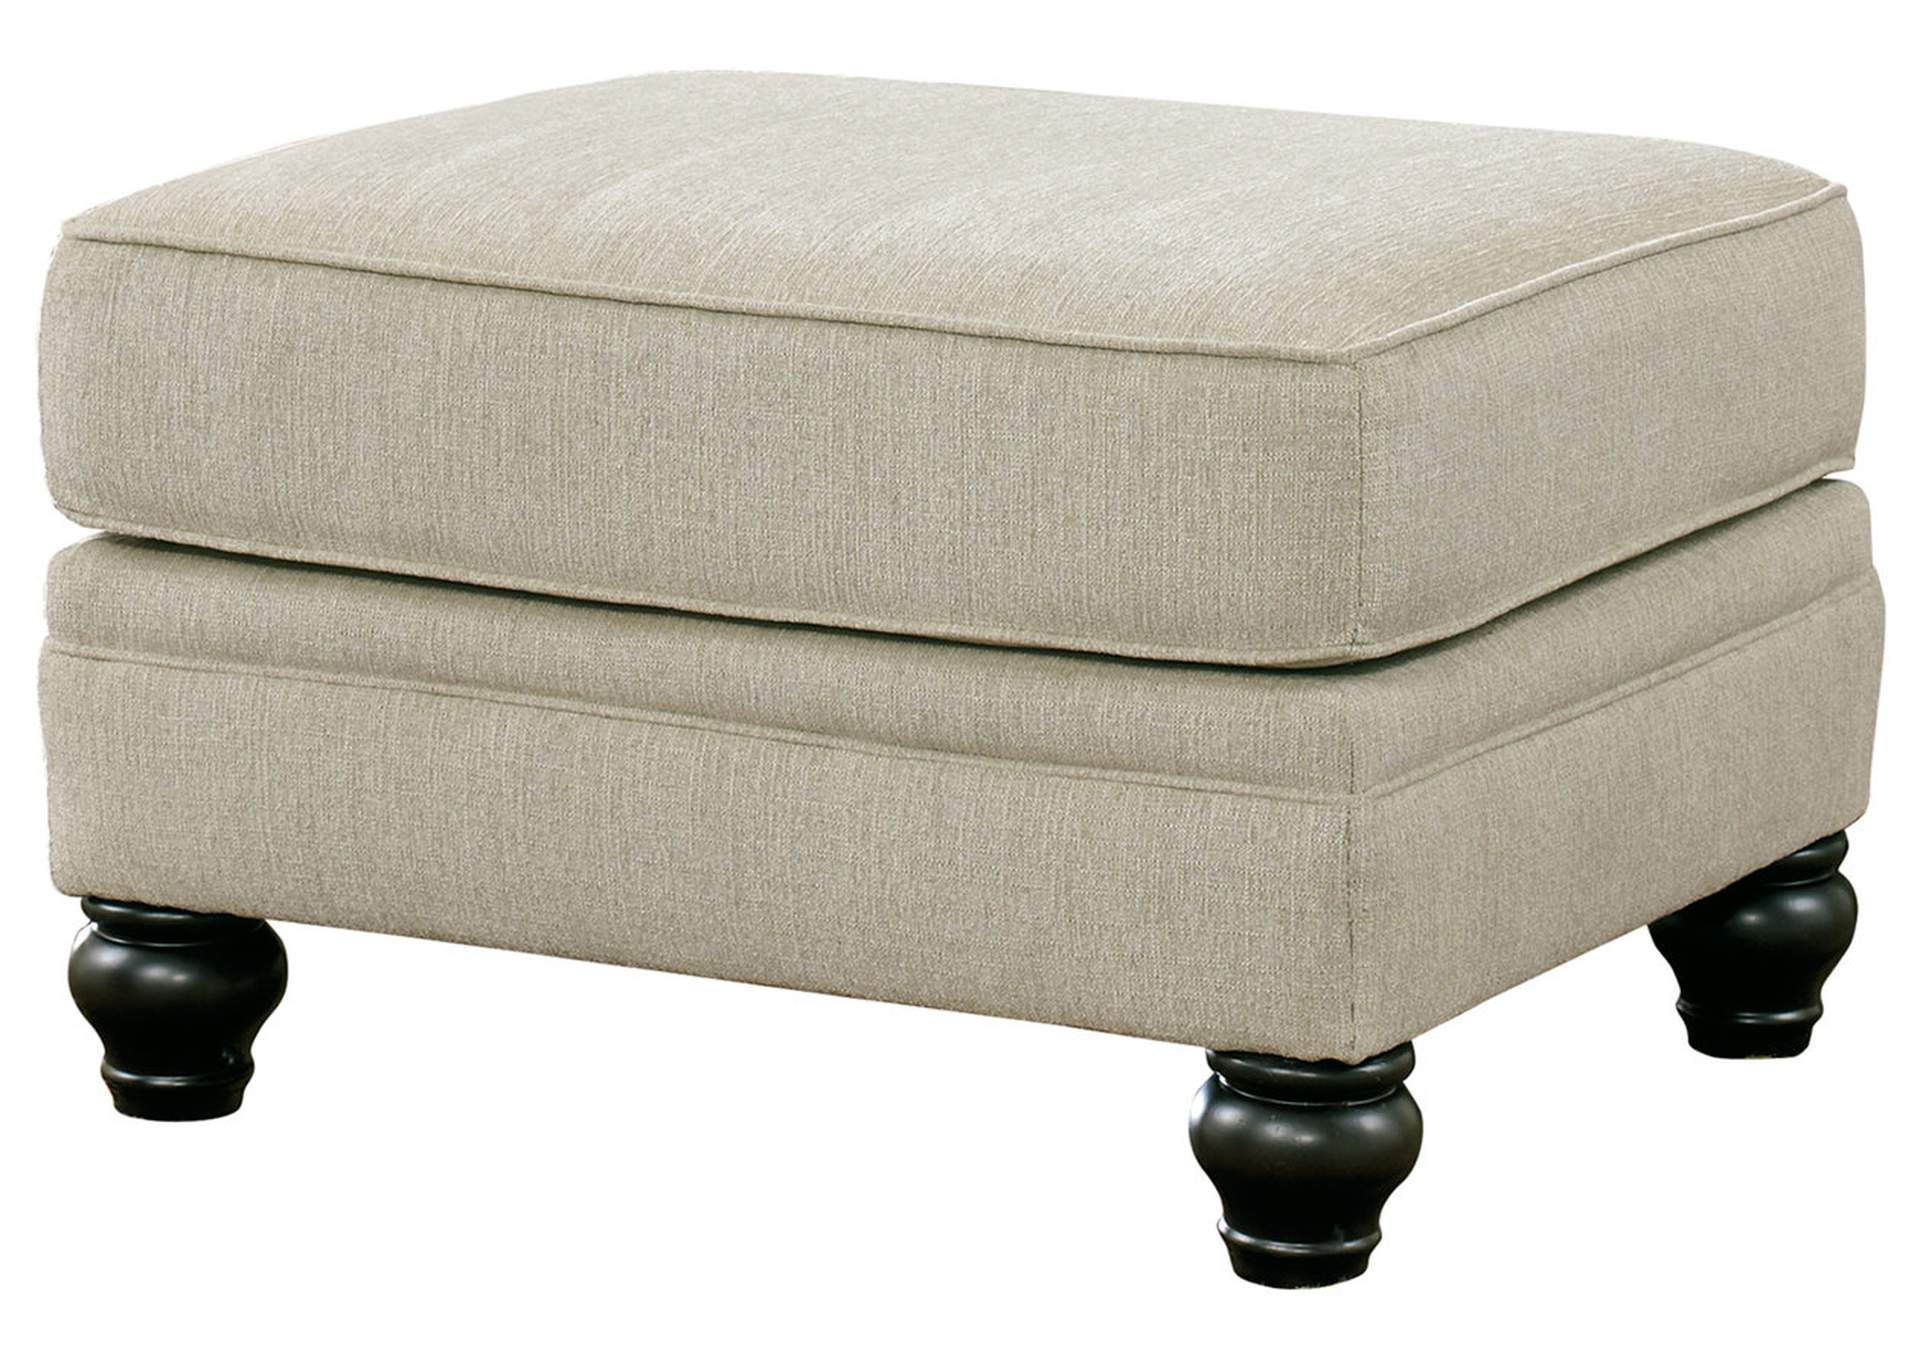 Milari Linen Ottoman,Signature Design By Ashley